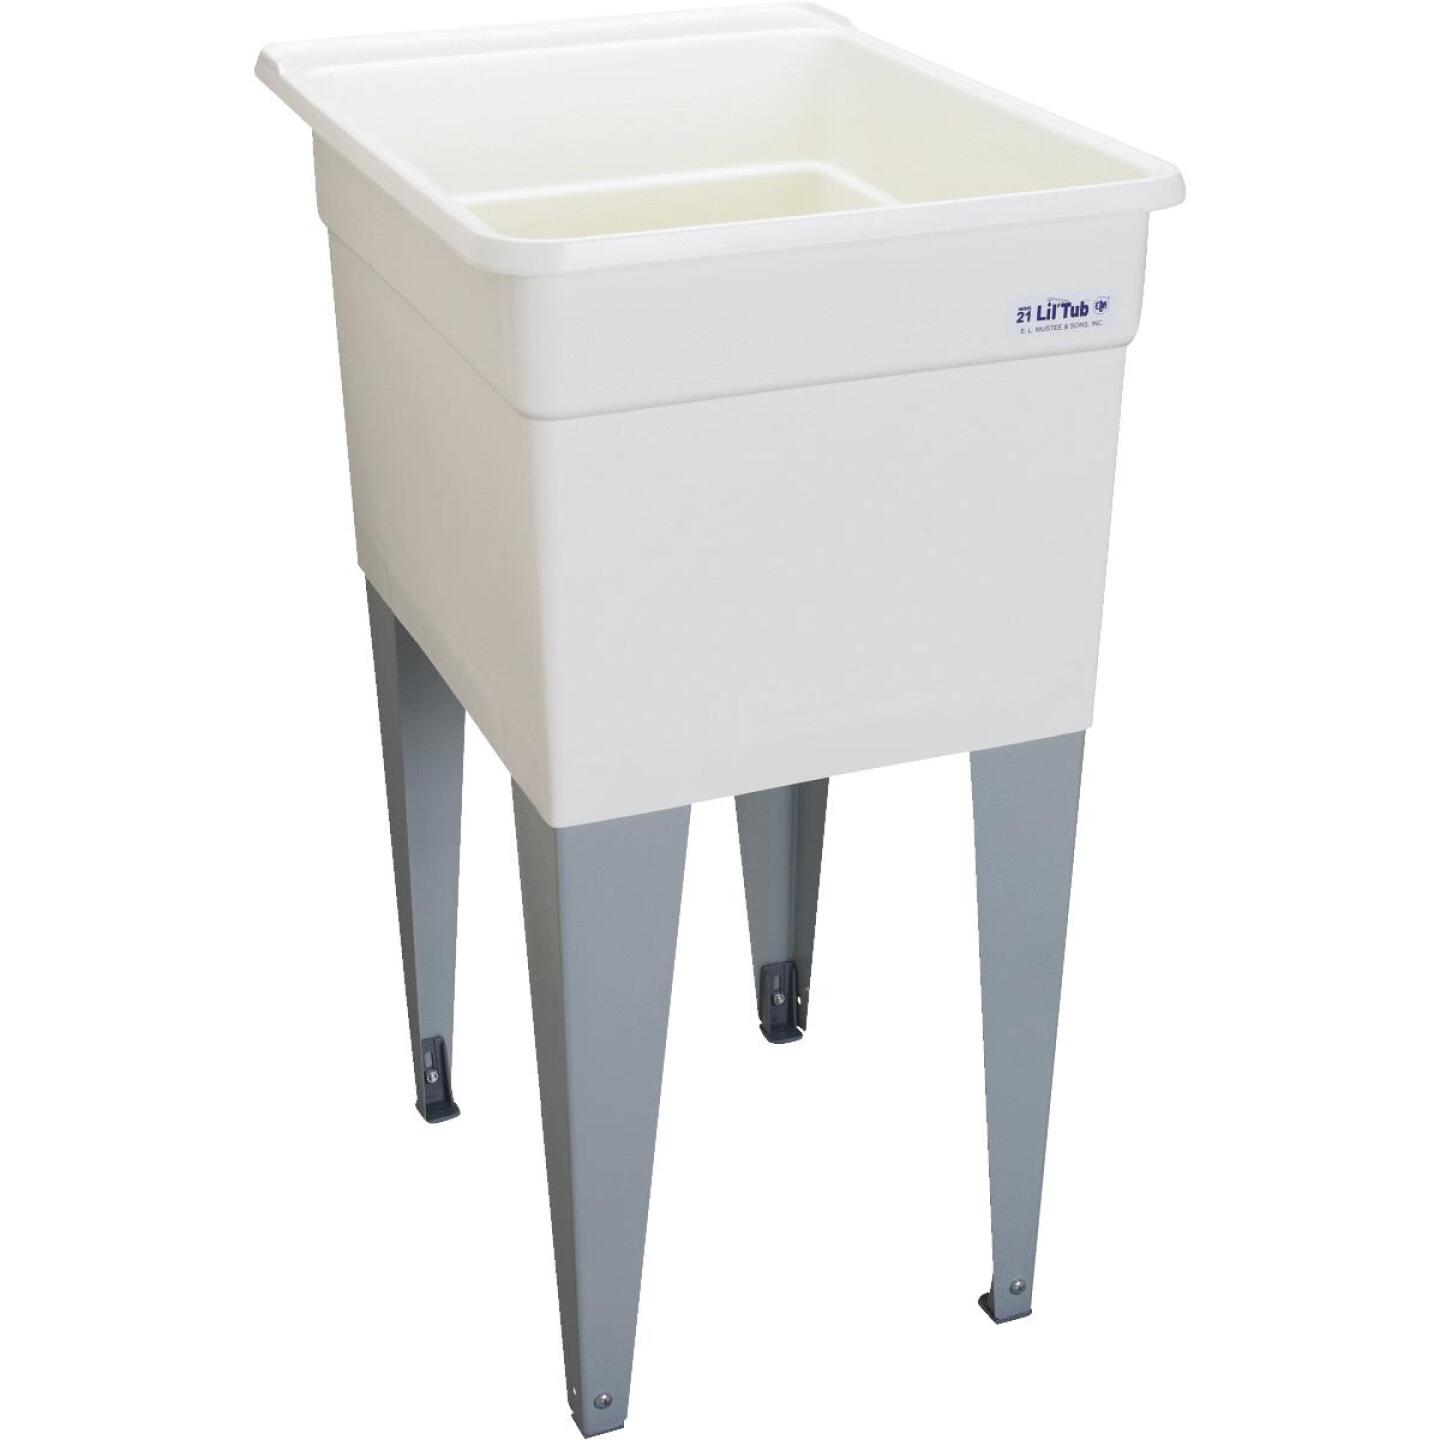 Mustee Liltub Utilitub 15 Gallon 18 In. W x 24 In. L Laundry Tub Image 1